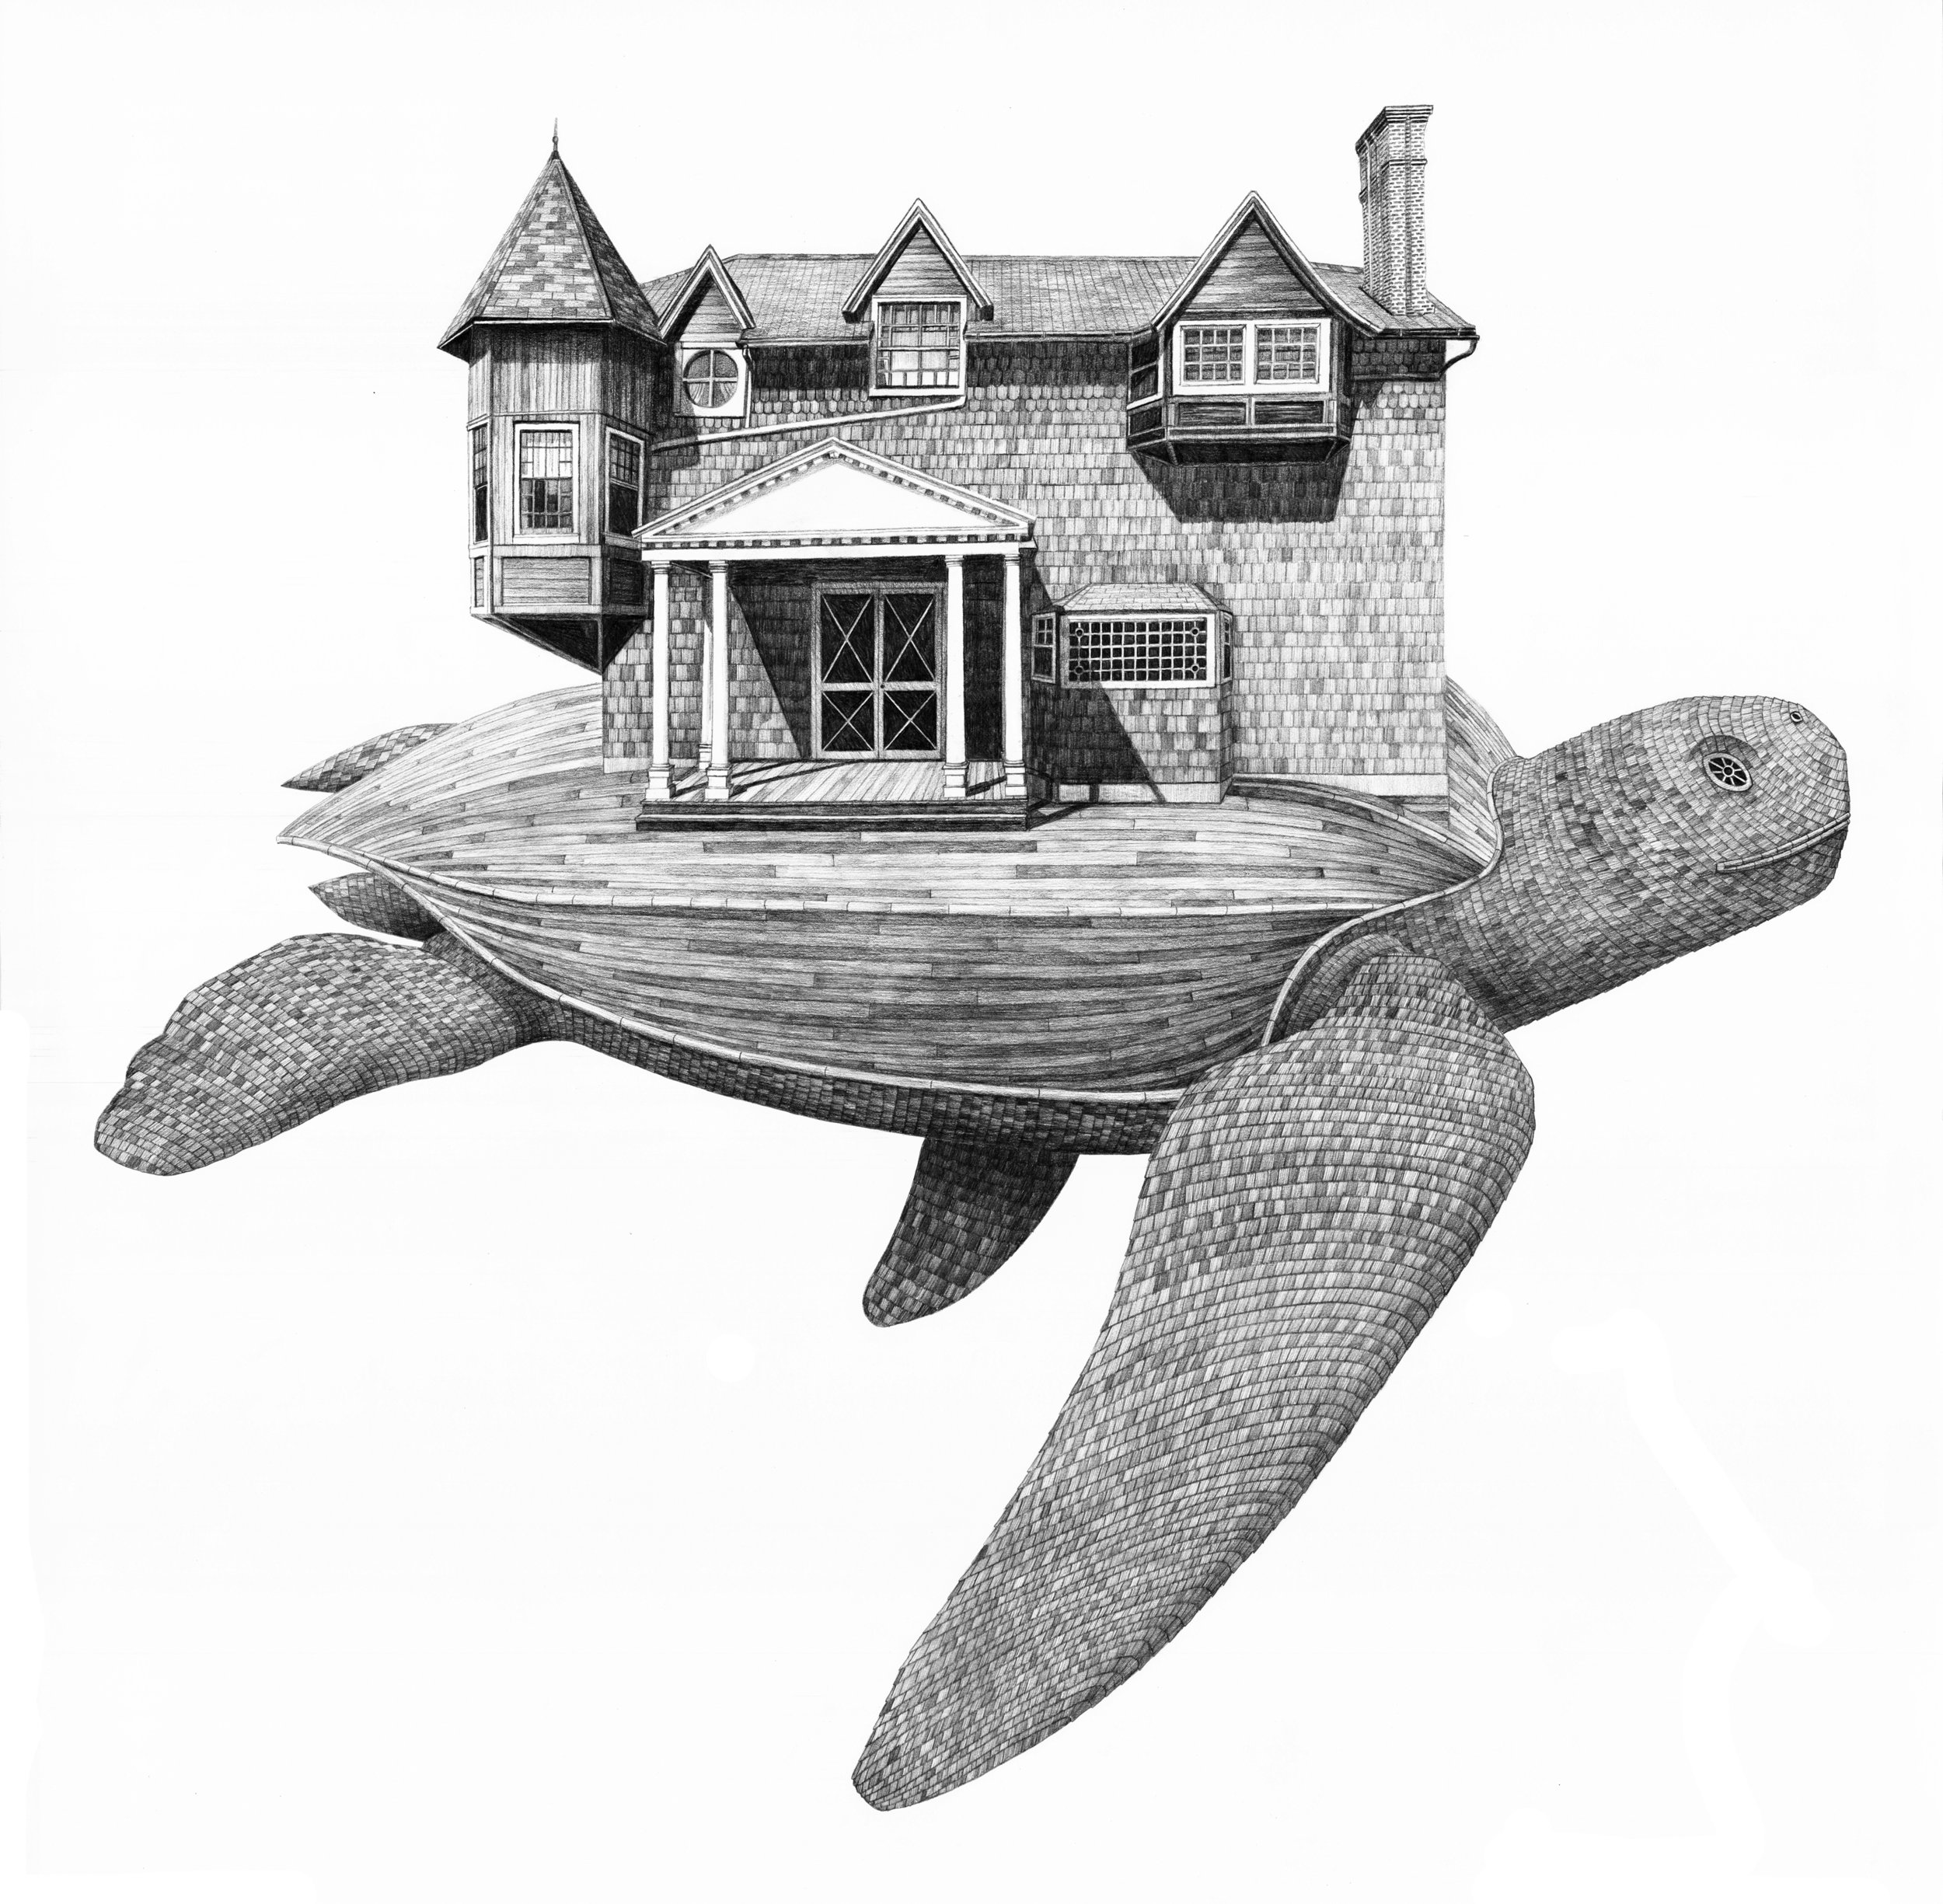 Moran's Turtle, 2017, graphite on paper, 36 x 36 in, $6,500